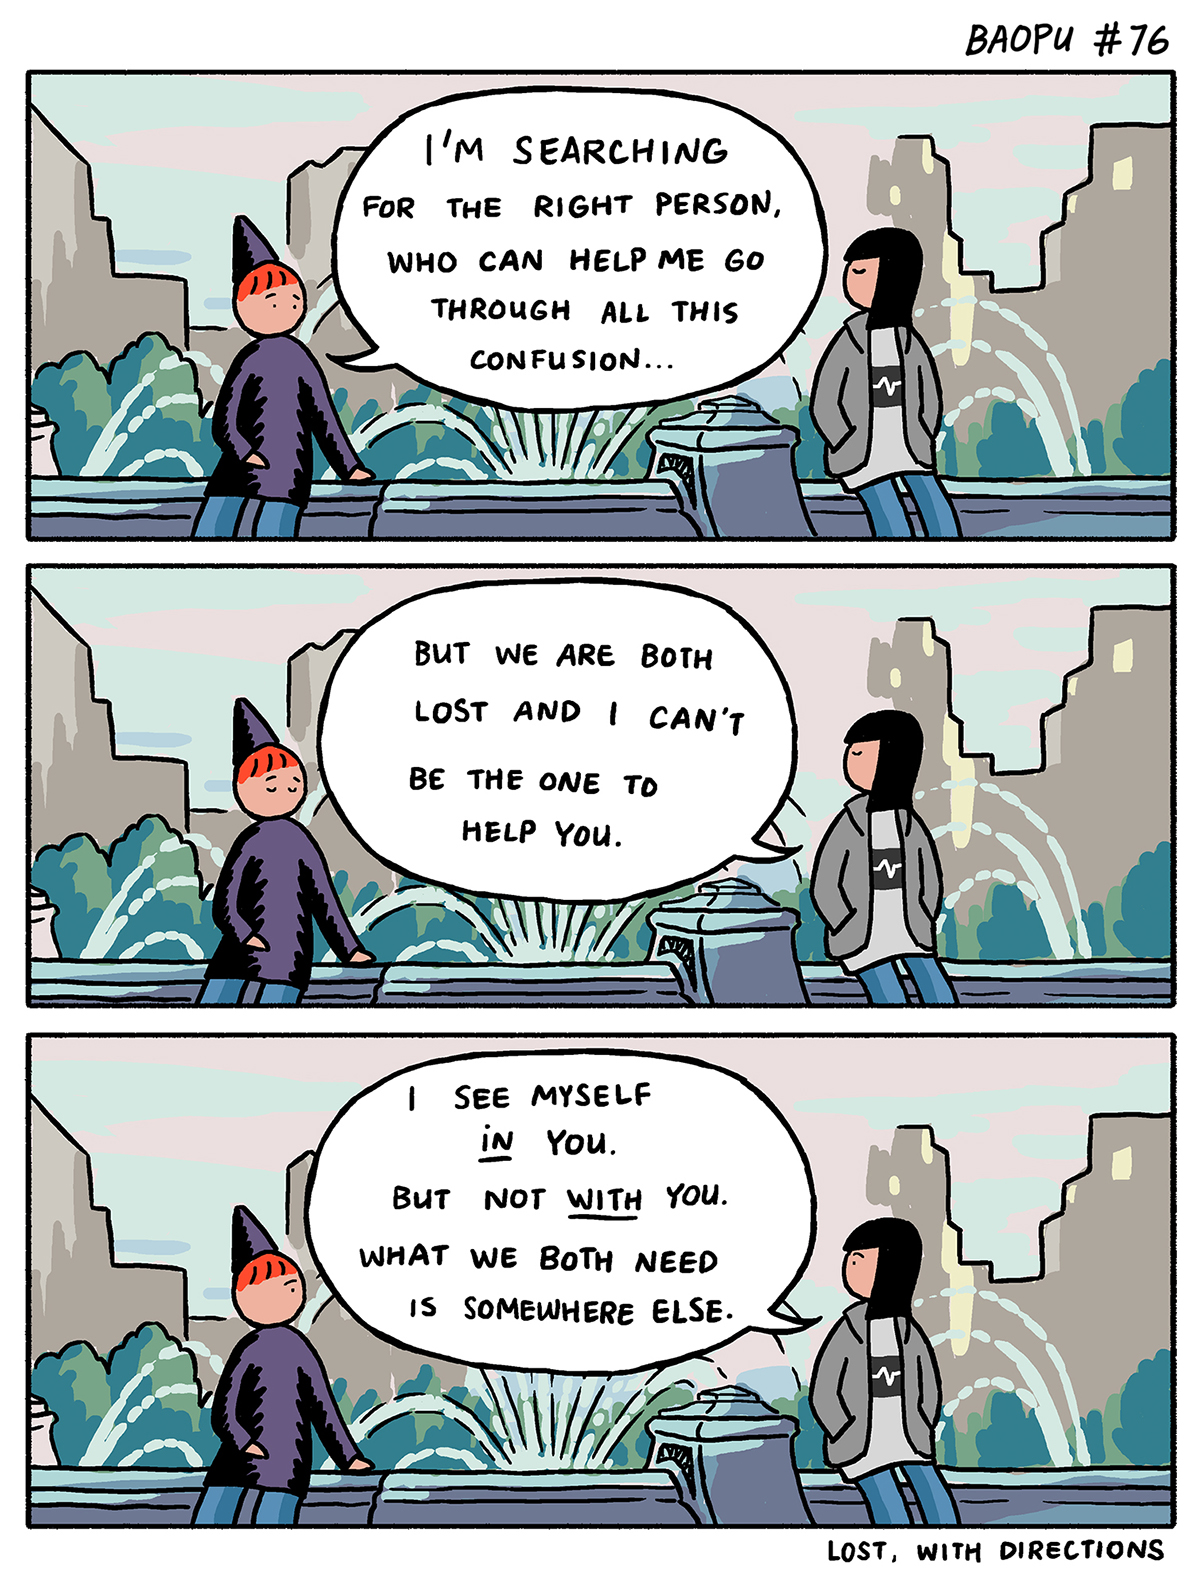 """A cartoon of two friends sit on a park bench. One has short red hair and a pointy hat. The other has jet black hair to their shoulders and green jacket. The friend with red hair says, """"I'm searching for the right person, who can help me through all this confusion. The friend in the green jacket responds, """"But we are both lost and I can't be the one to help you. I see myself in you, but not with you. What we both need is somewhere else."""